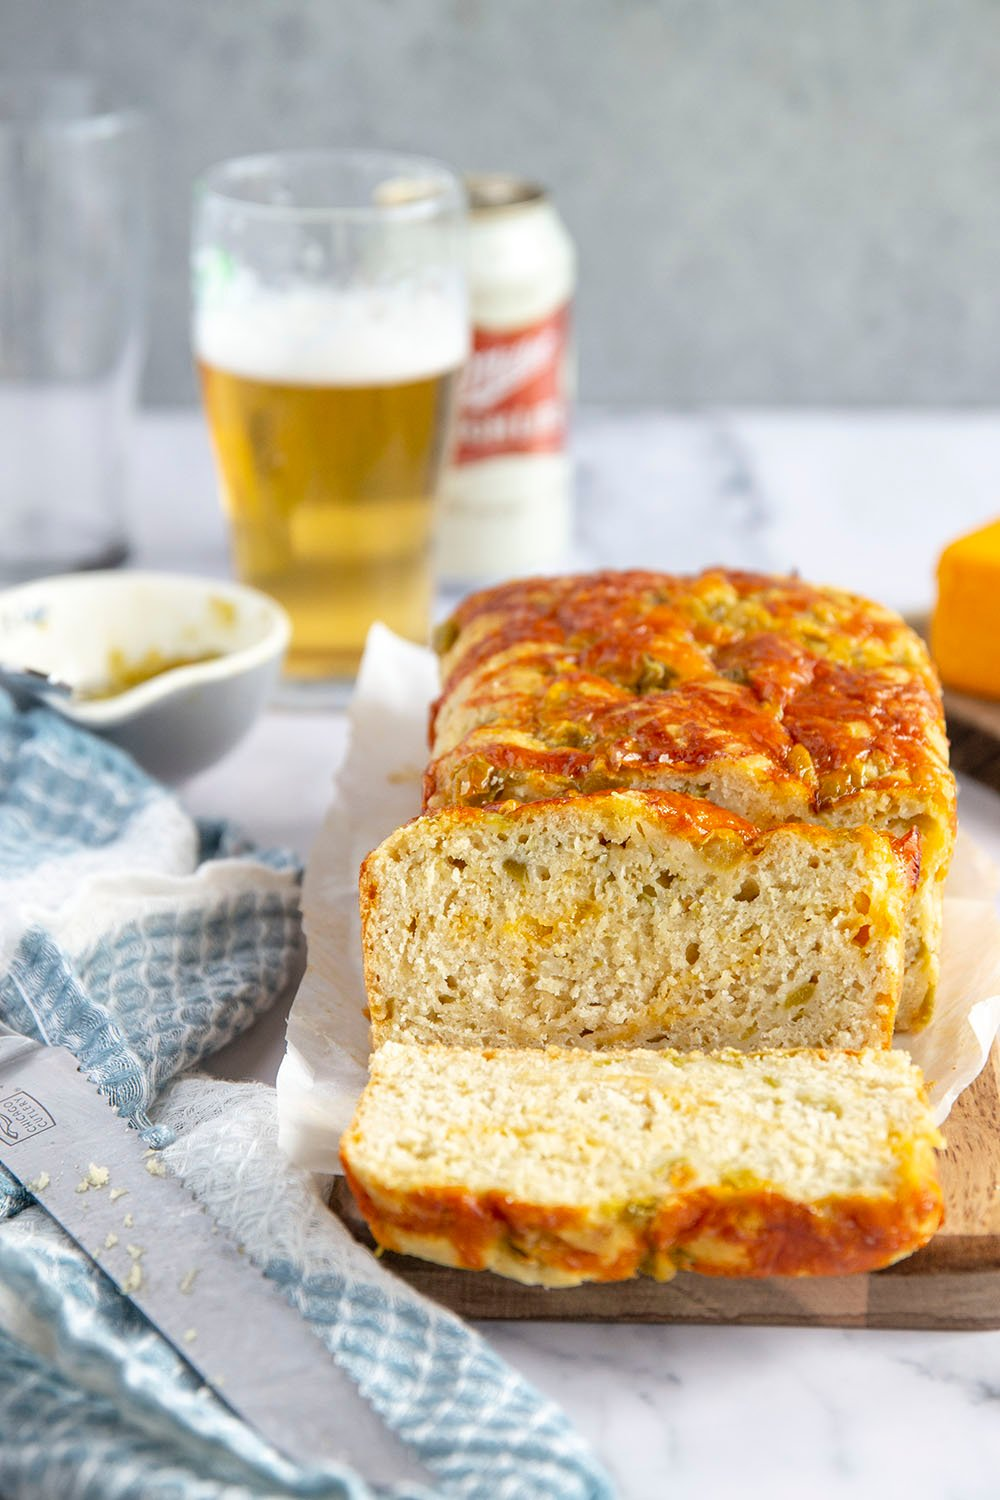 Green chile cheddar beer bread features spicy green chiles and gooey cheddar in a soft, flavorful beer quick bread that's perfect for snacking or a game day appetizer!